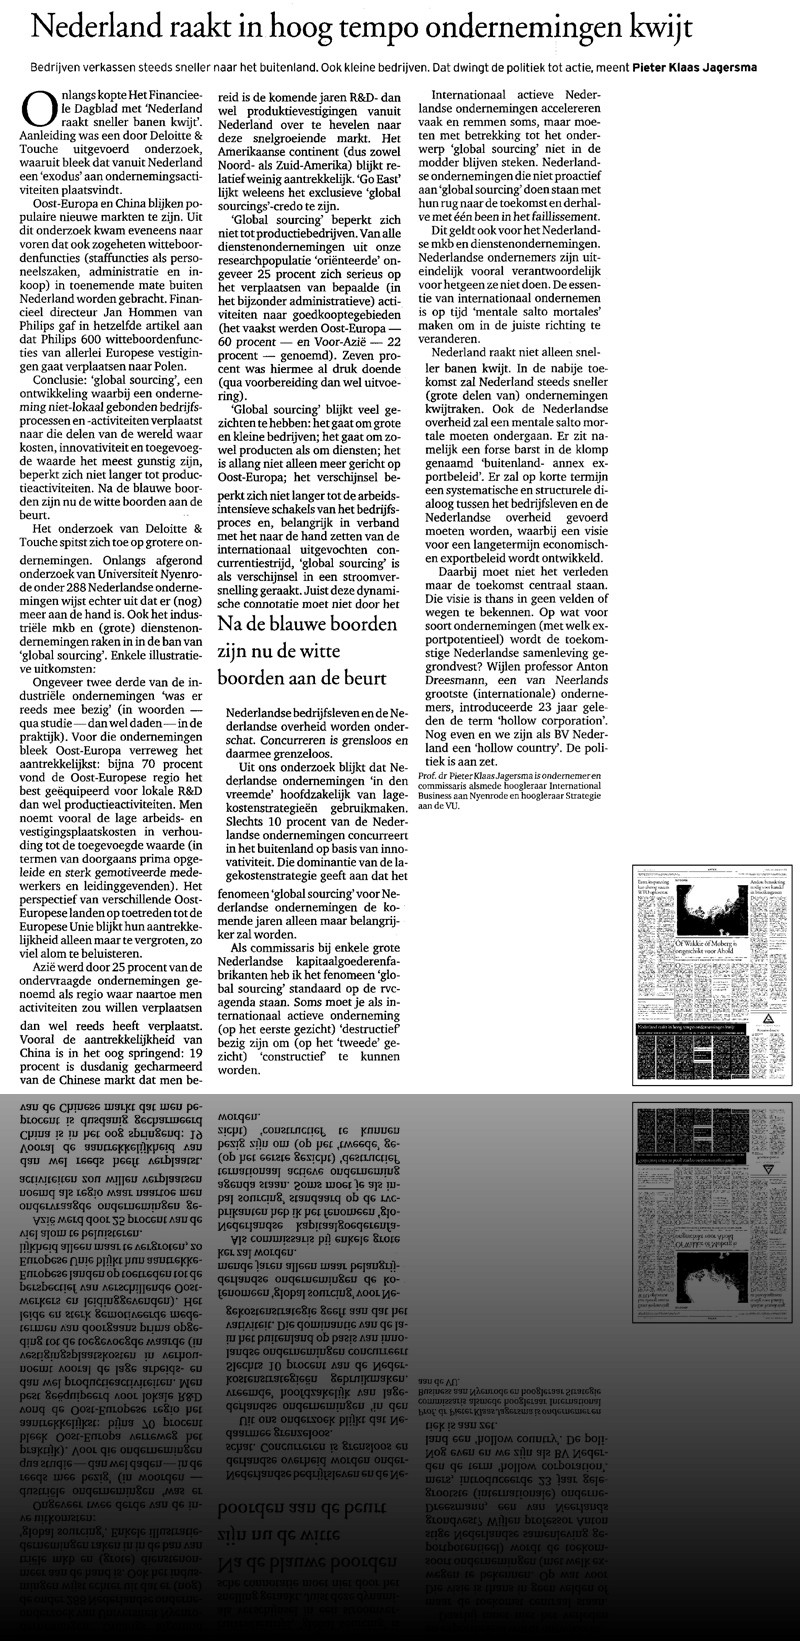 ArticleHetFinancieeleDagblad181103.jpg